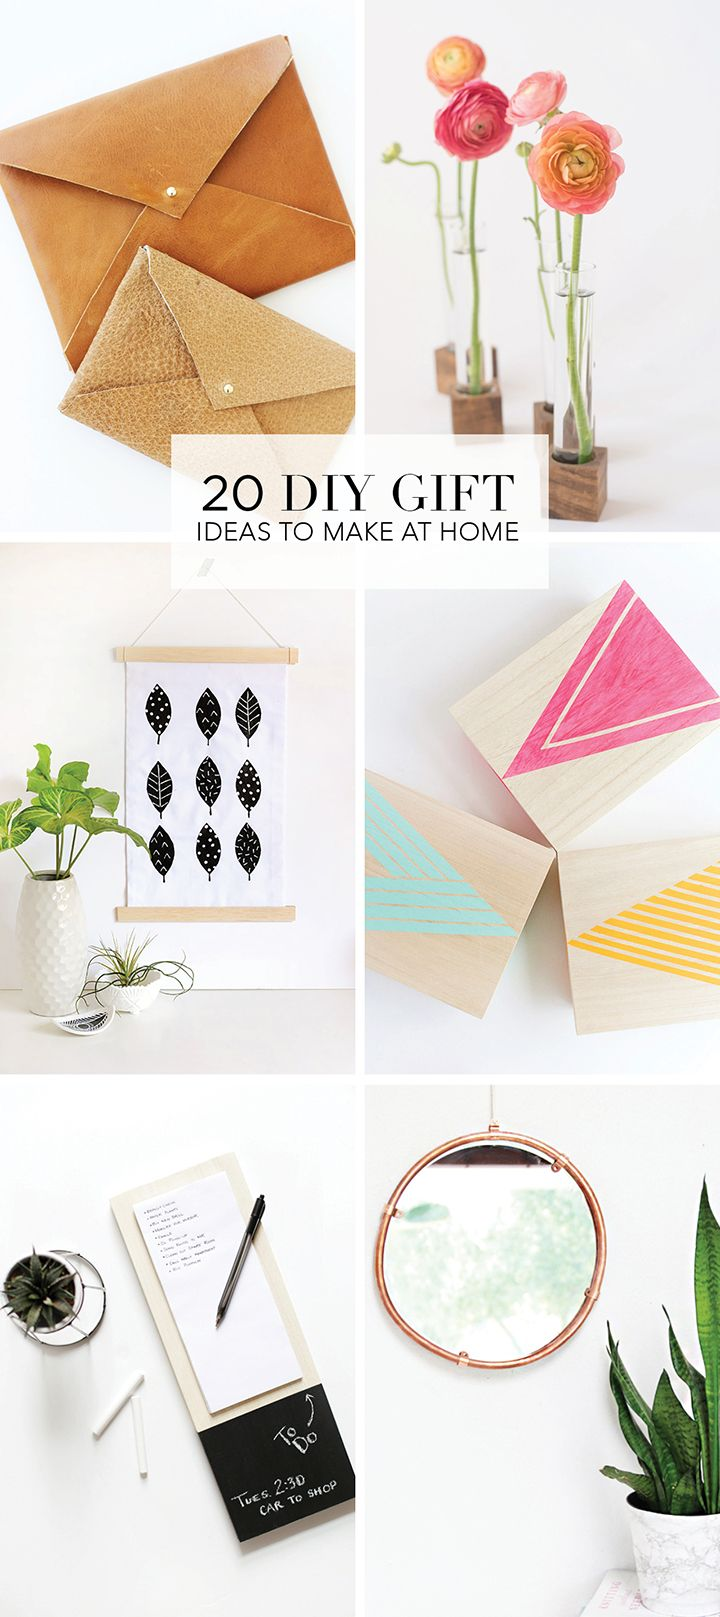 We've rounded up 20 of our favorite DIY Holiday Gift Ideas for you. Everyone loves a handmade gift for the holidays, so give one of these DIY projects a try. | www.homeology.co.za